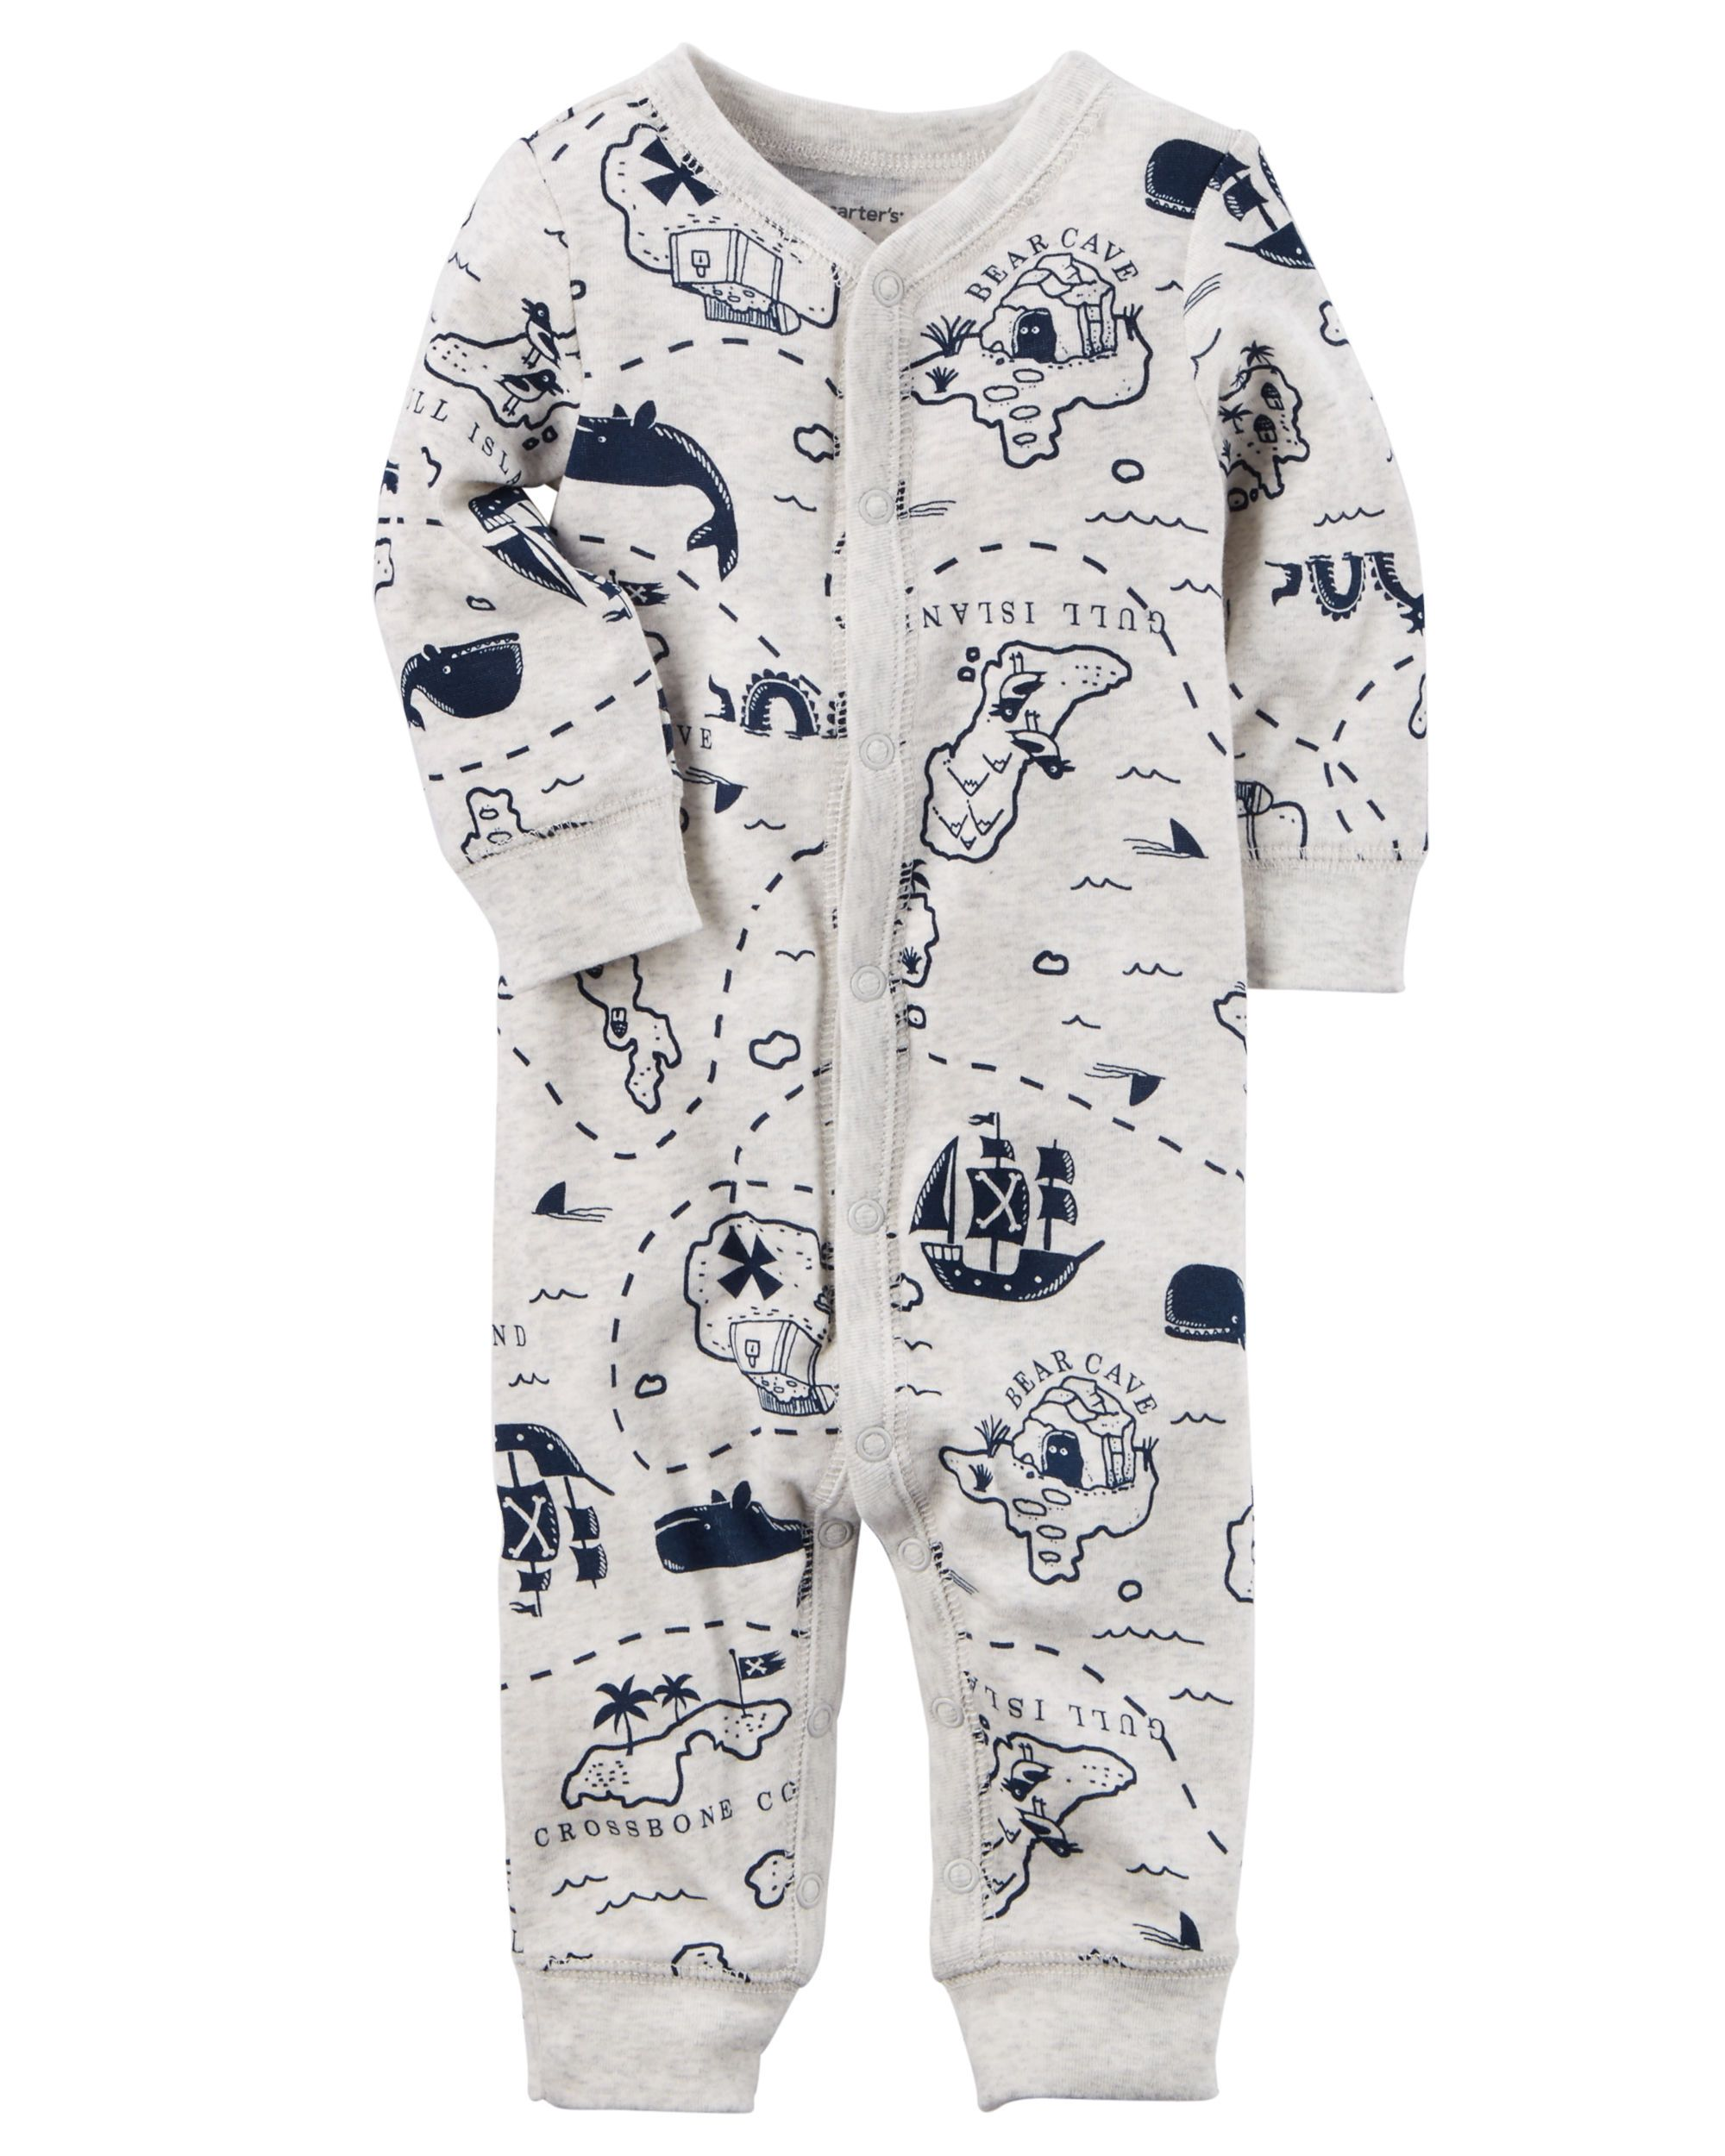 Cotton Snap-Up Footless Sleep & Play  Baby clothes, Carters baby